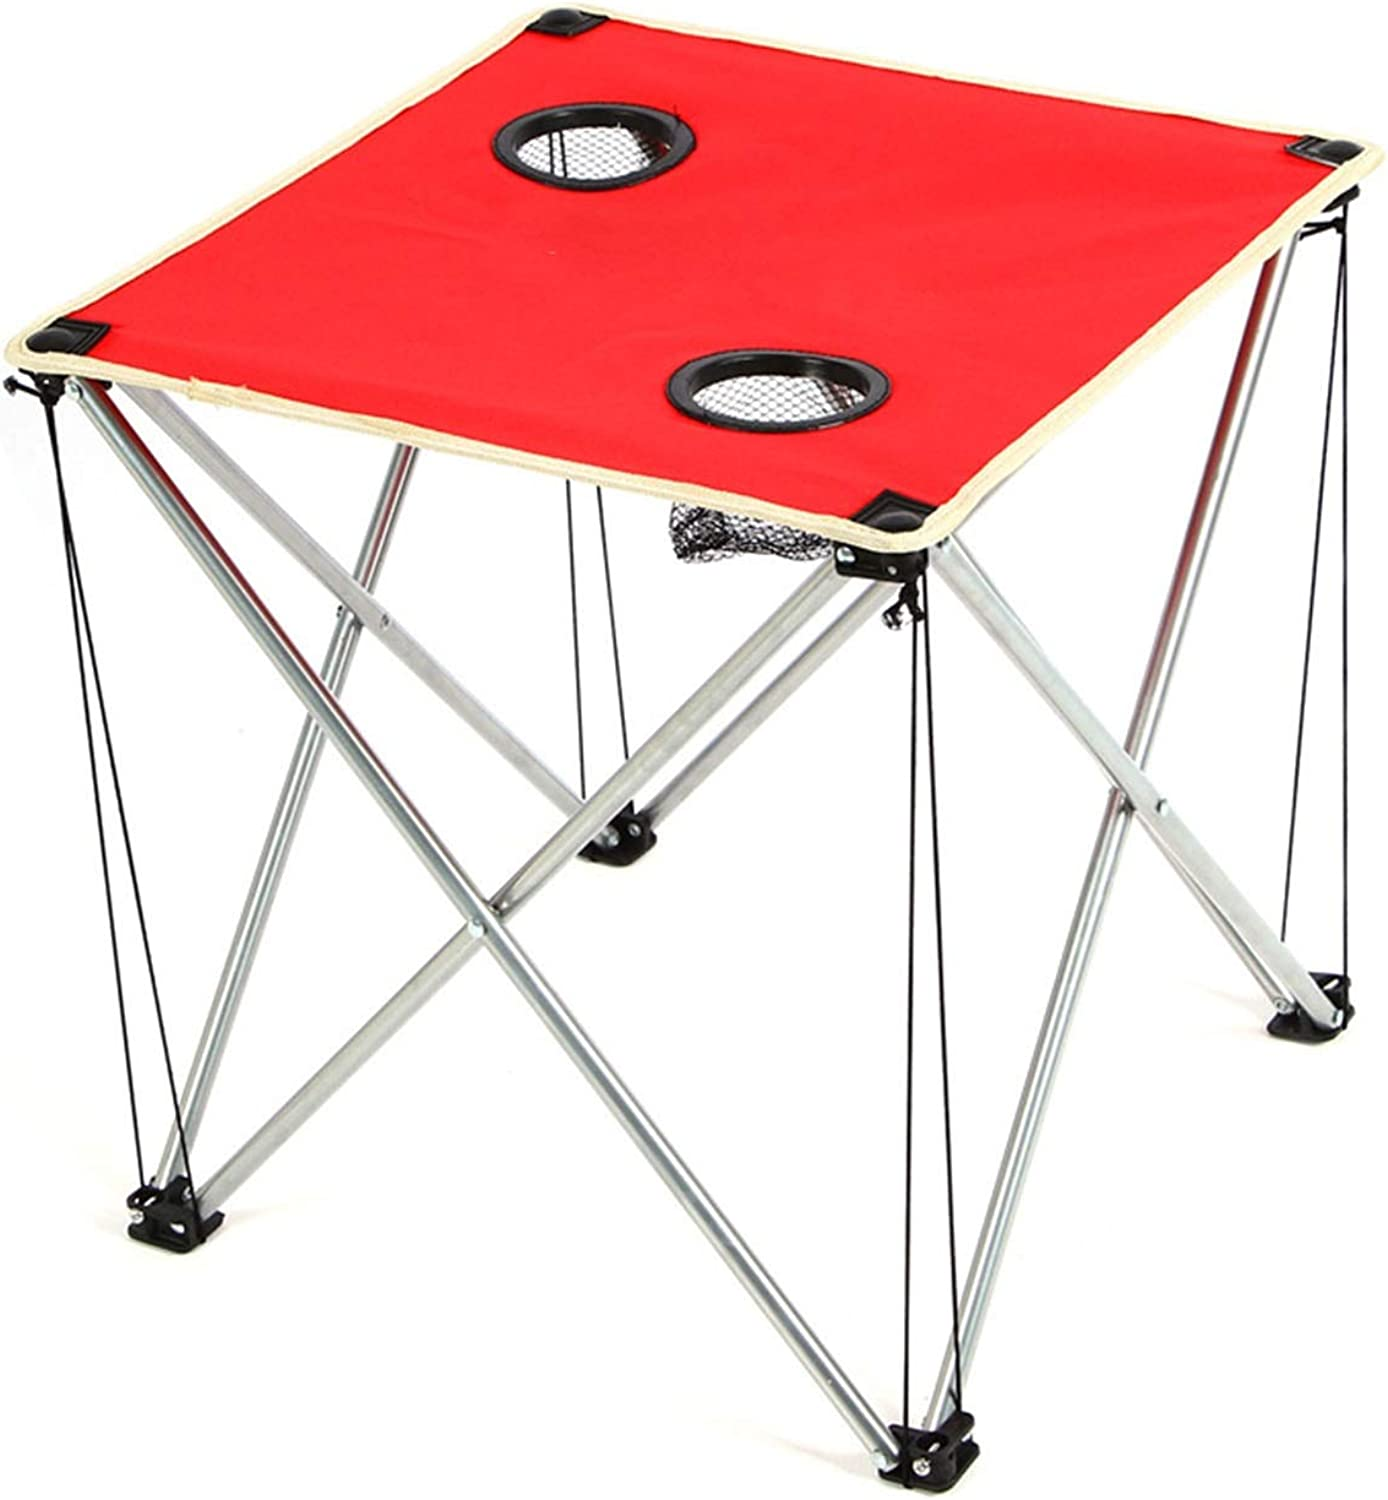 Convenient Thicken Outdoor Folding Table, Oxford Cloth Coffee Table, Travel Barbecue Beach, Ultra Light Portable Camping Supplies Easy to Install (color   Red)